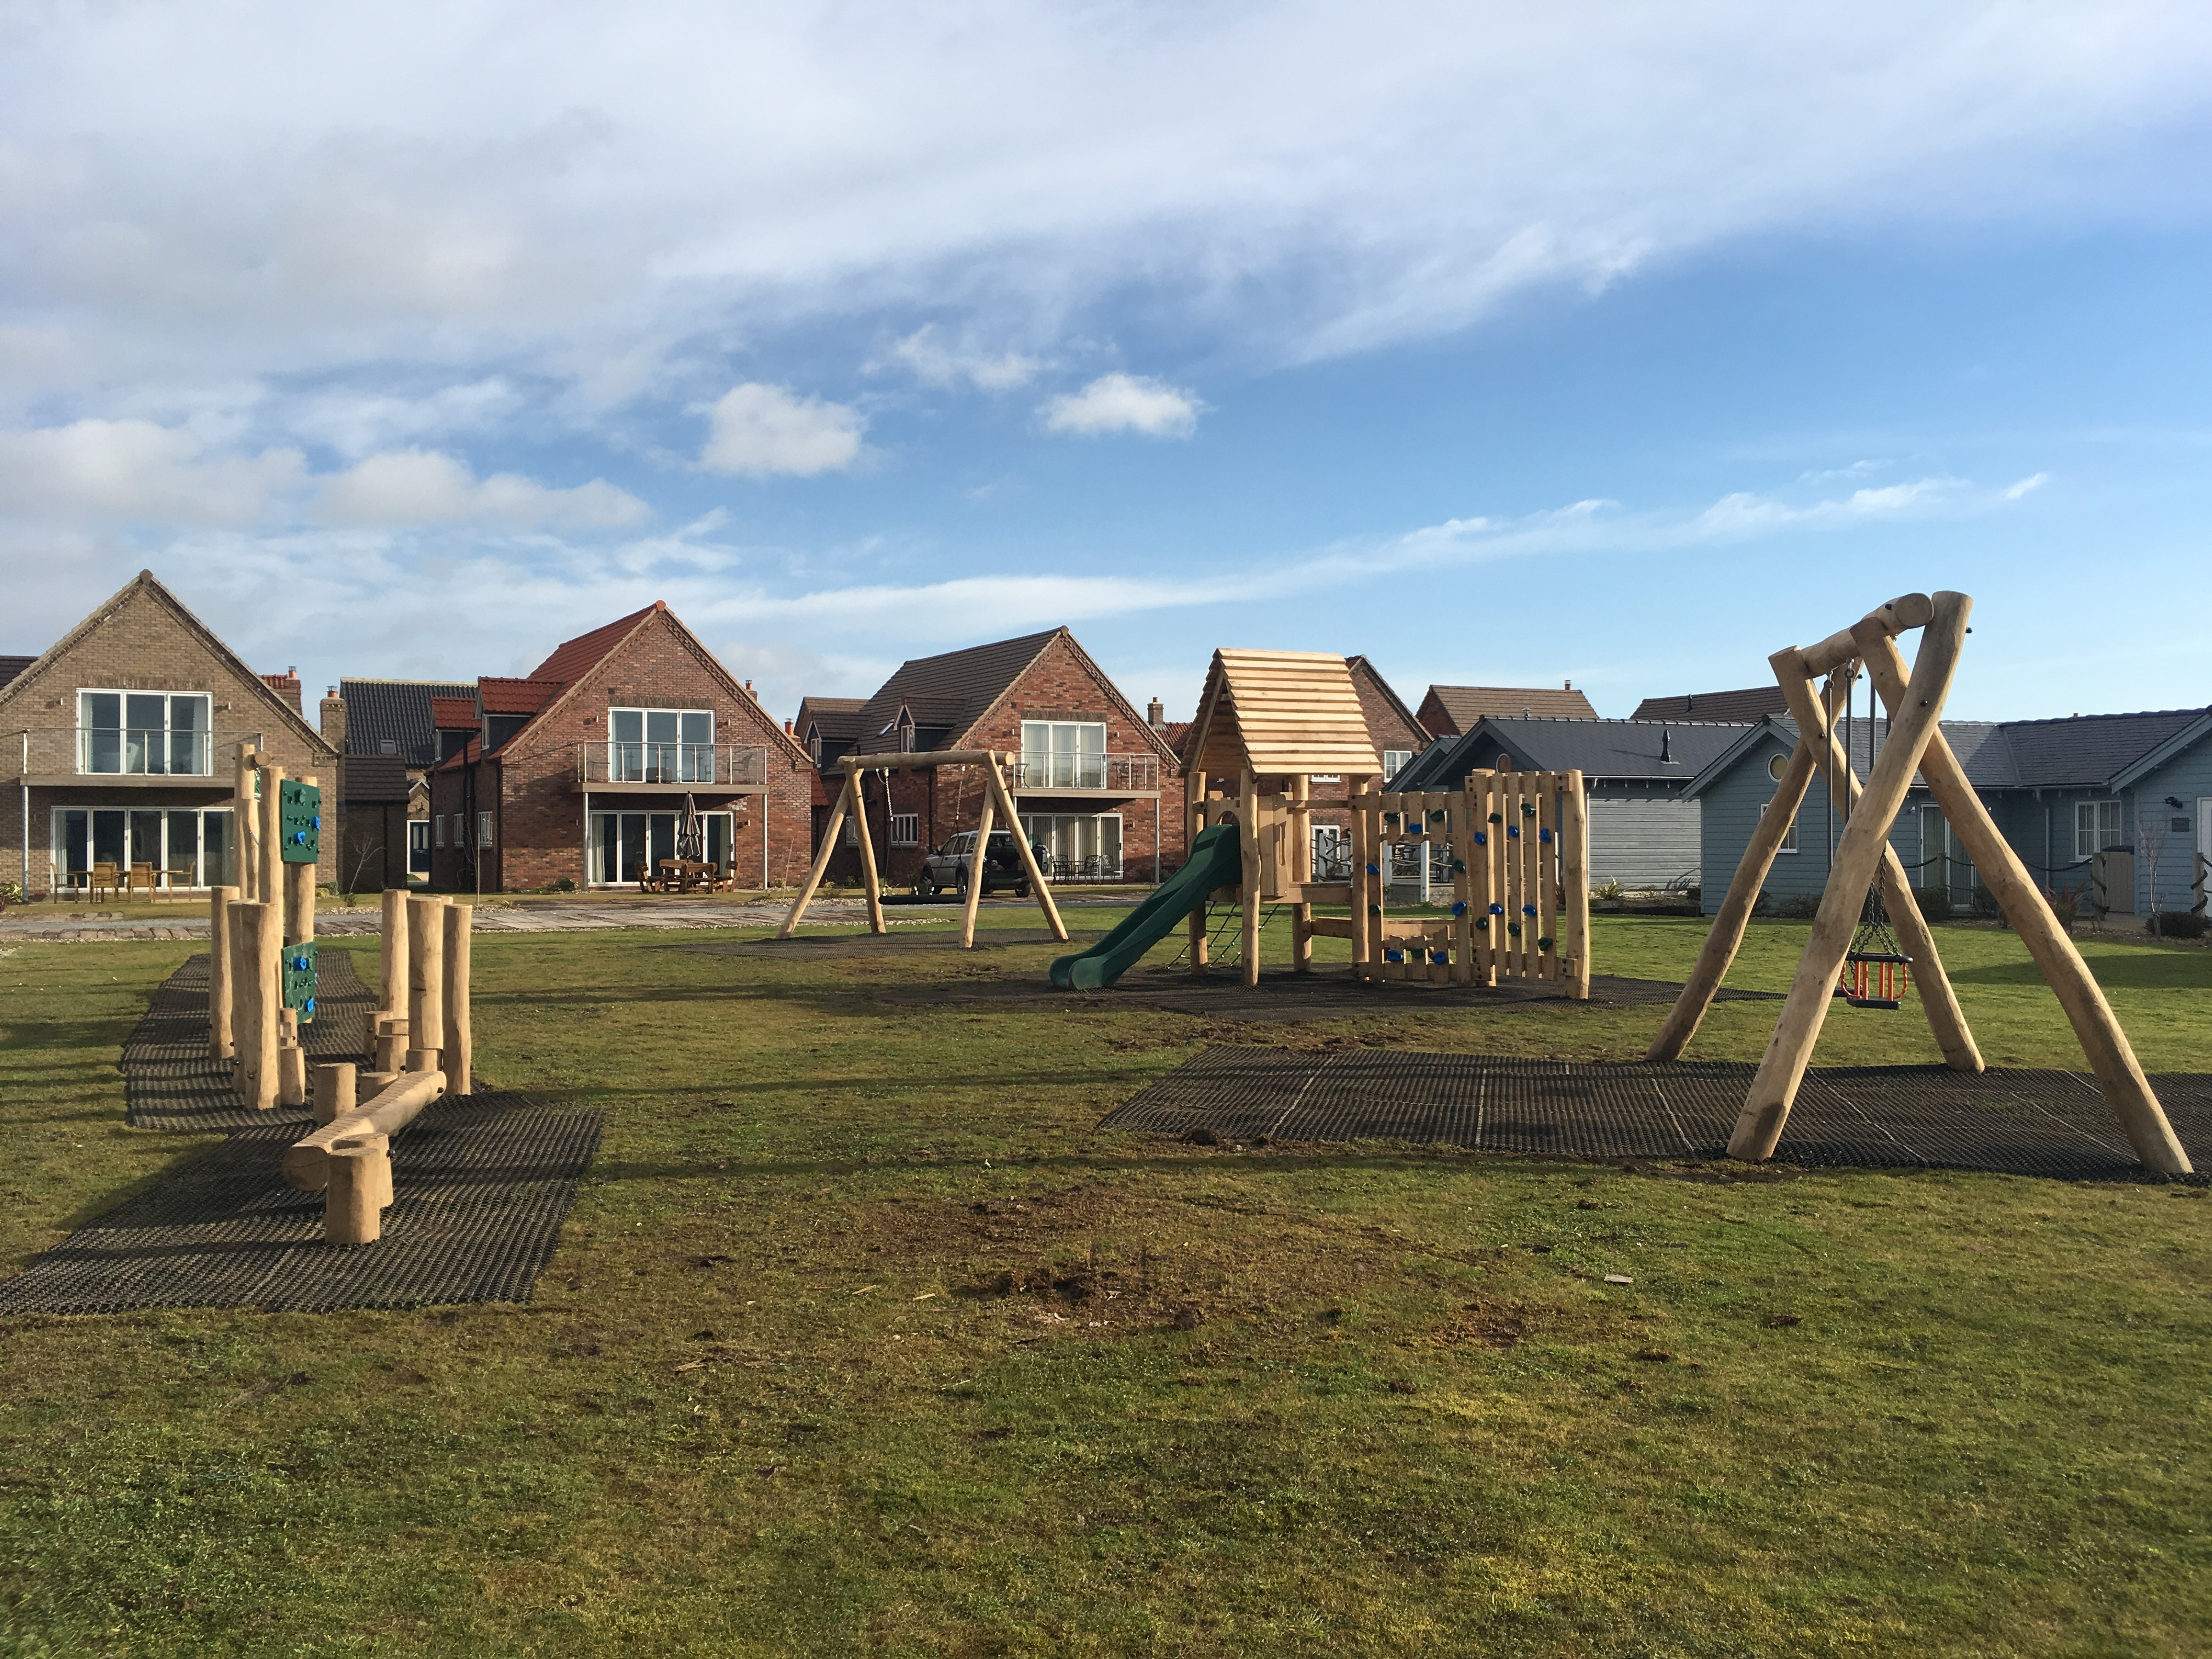 Both houses are close to the new childrens playground